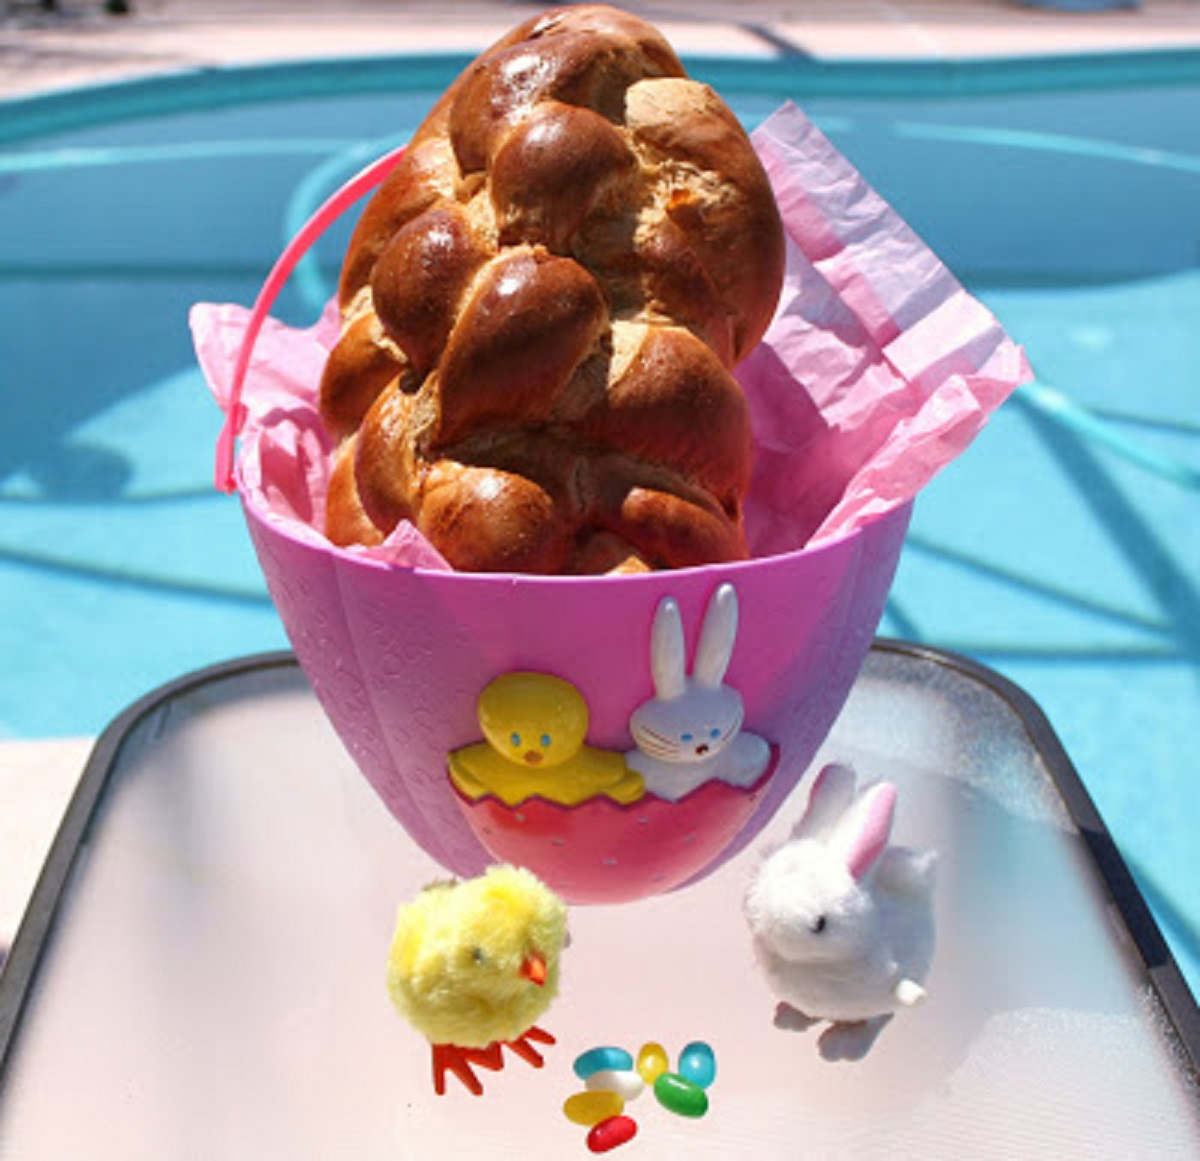 Braided Easter Bread in an Easter Basket with Bunnies